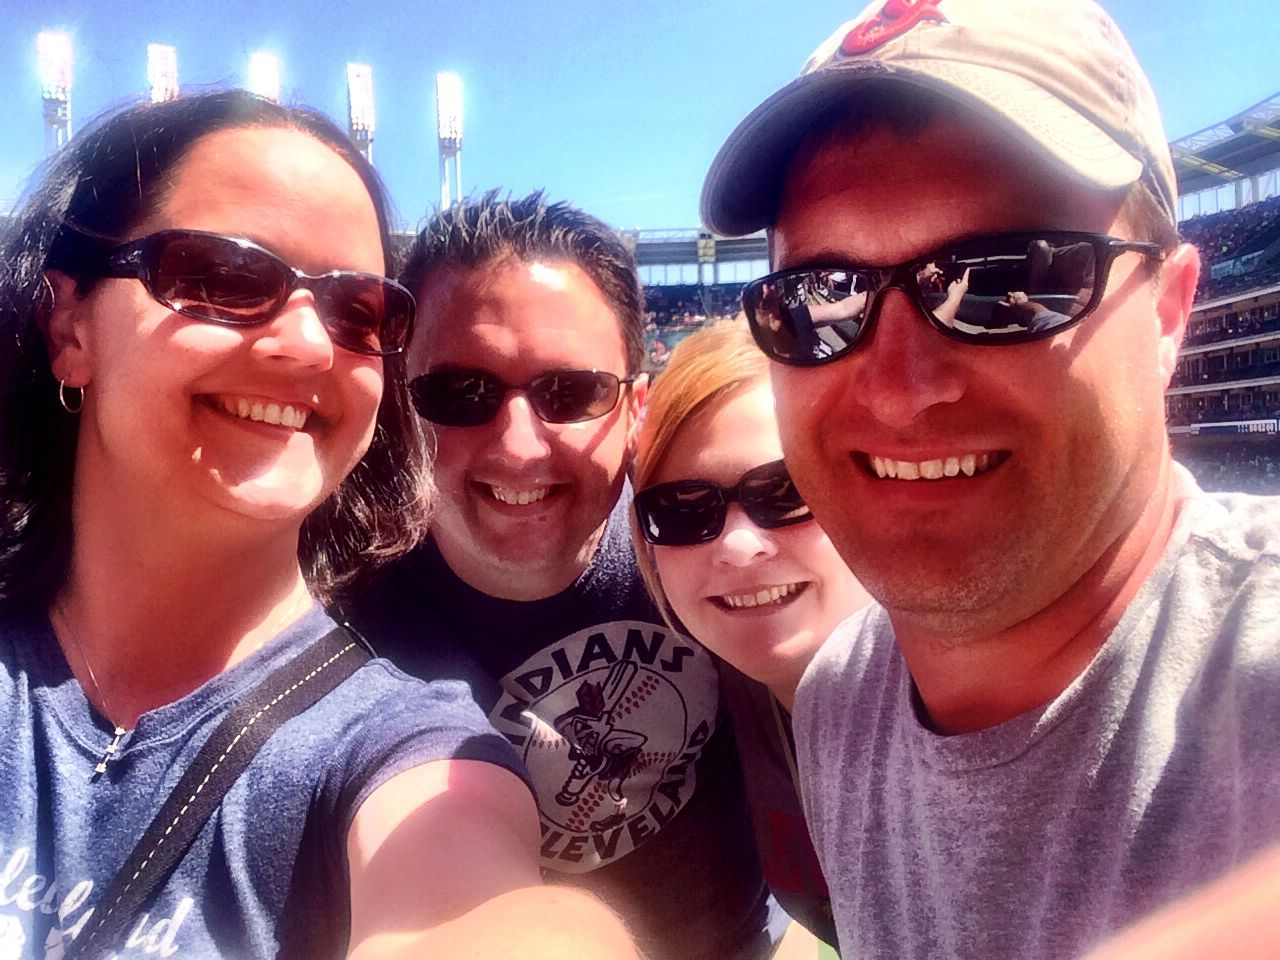 Chief Meteorologist Eric Wilhelm, his wife Megan and friends at a